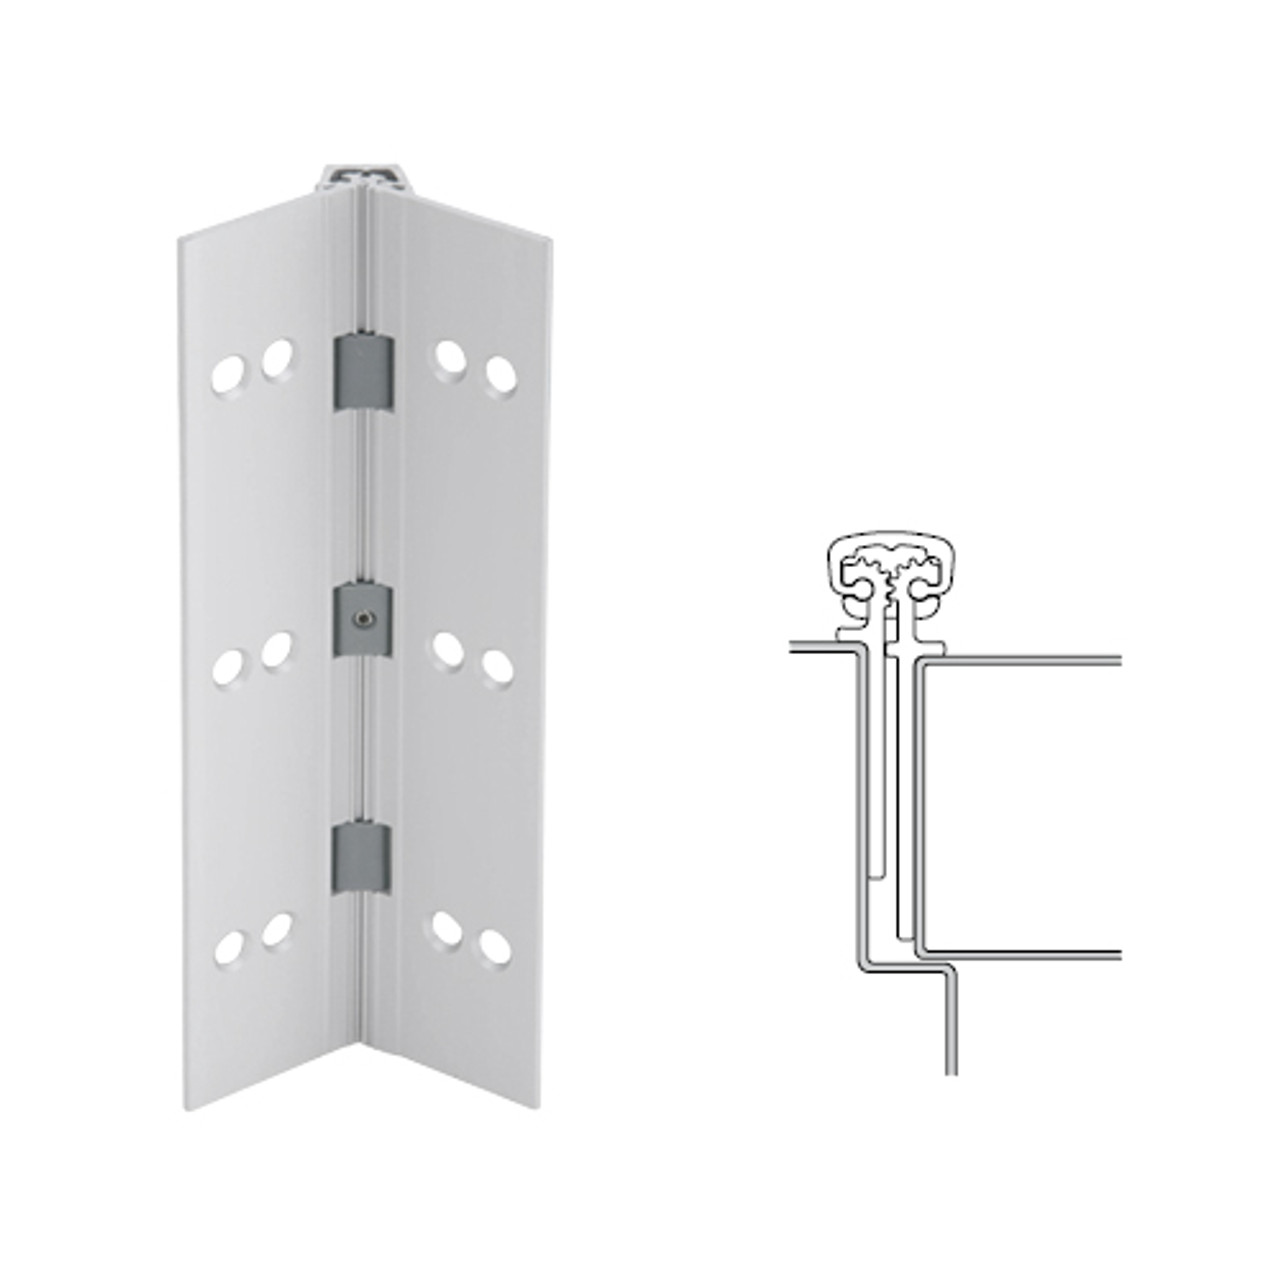 026XY-US28-83-SECHM IVES Full Mortise Continuous Geared Hinges with Security Screws - Hex Pin Drive in Satin Aluminum